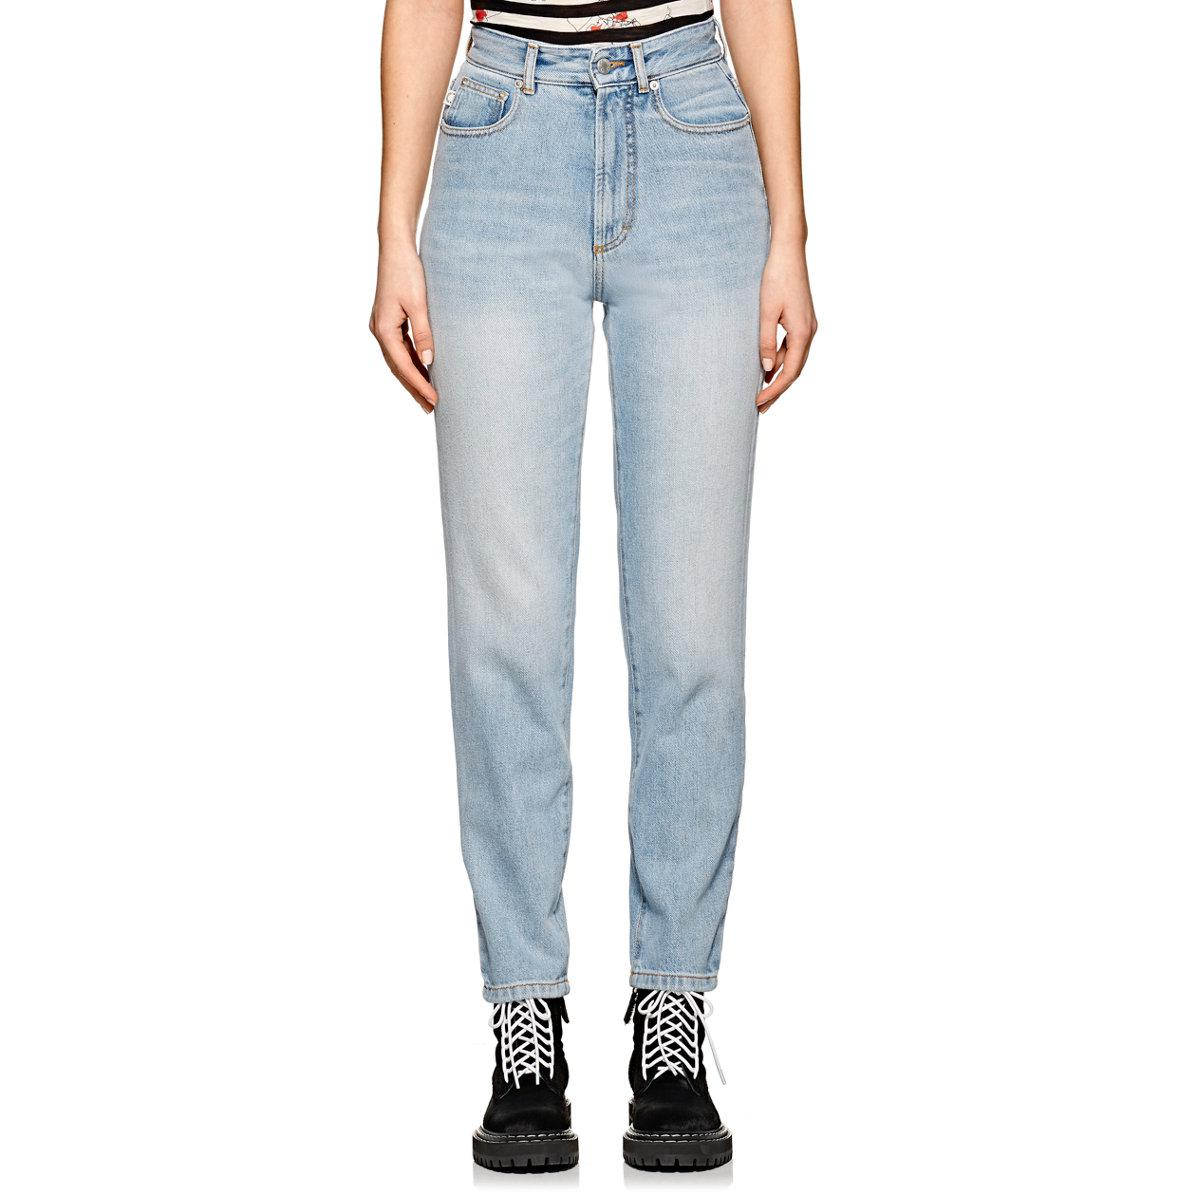 Outlet Purchase Pictures Cheap Price classic skinny jeans - Blue Fiorucci Outlet Low Cost HeuScA